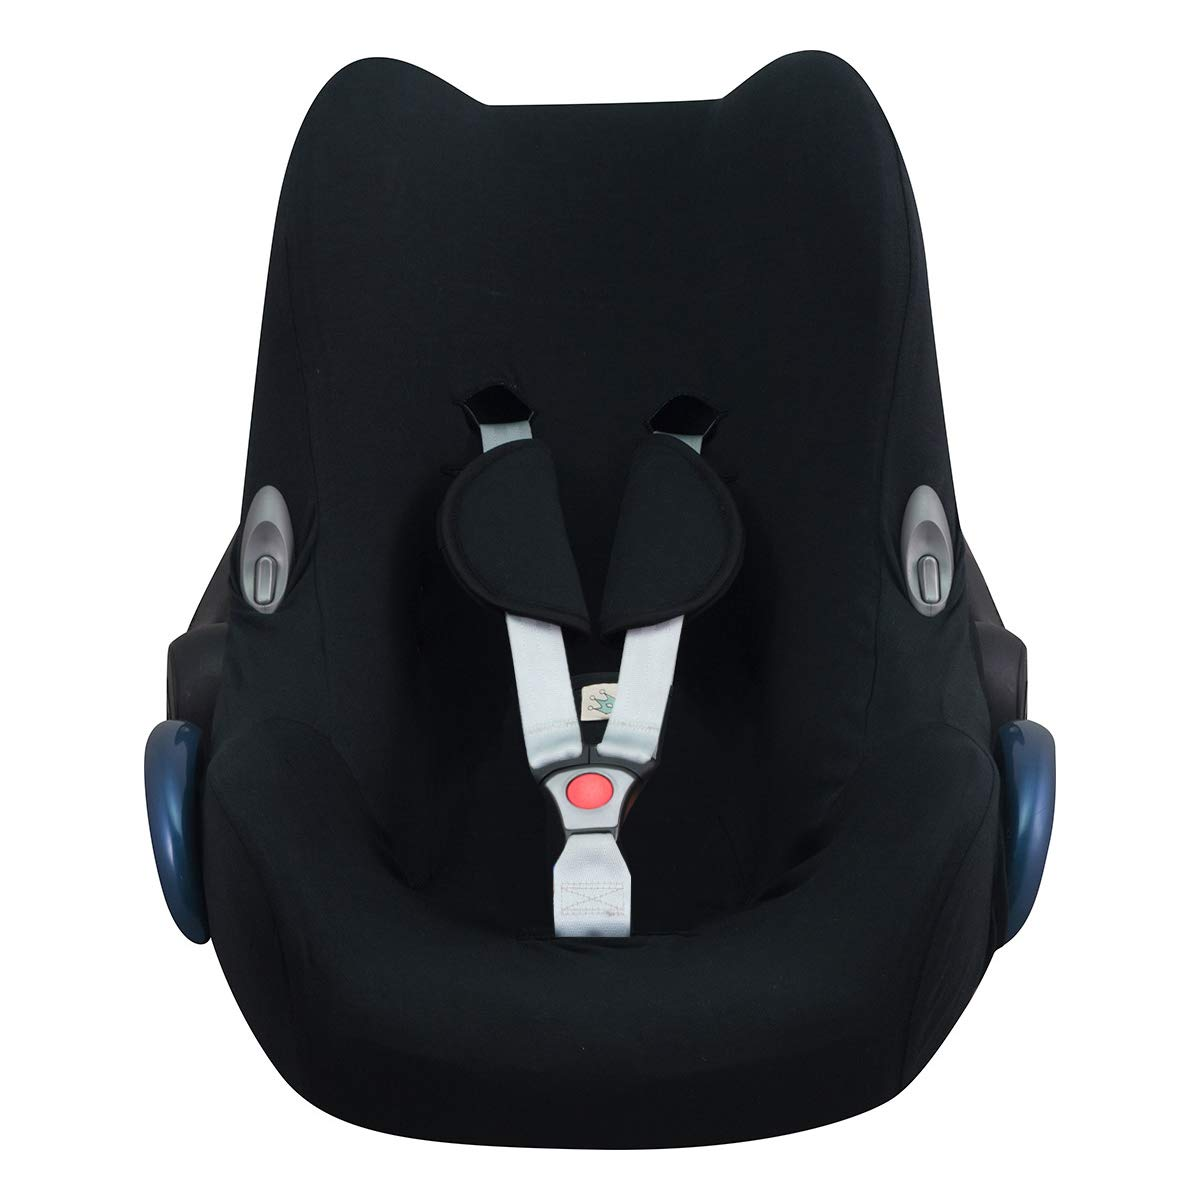 JANABEBE Cover Liner Compatible with Maxi COSI Cabriofix, City, Streety Fix (Black Series)